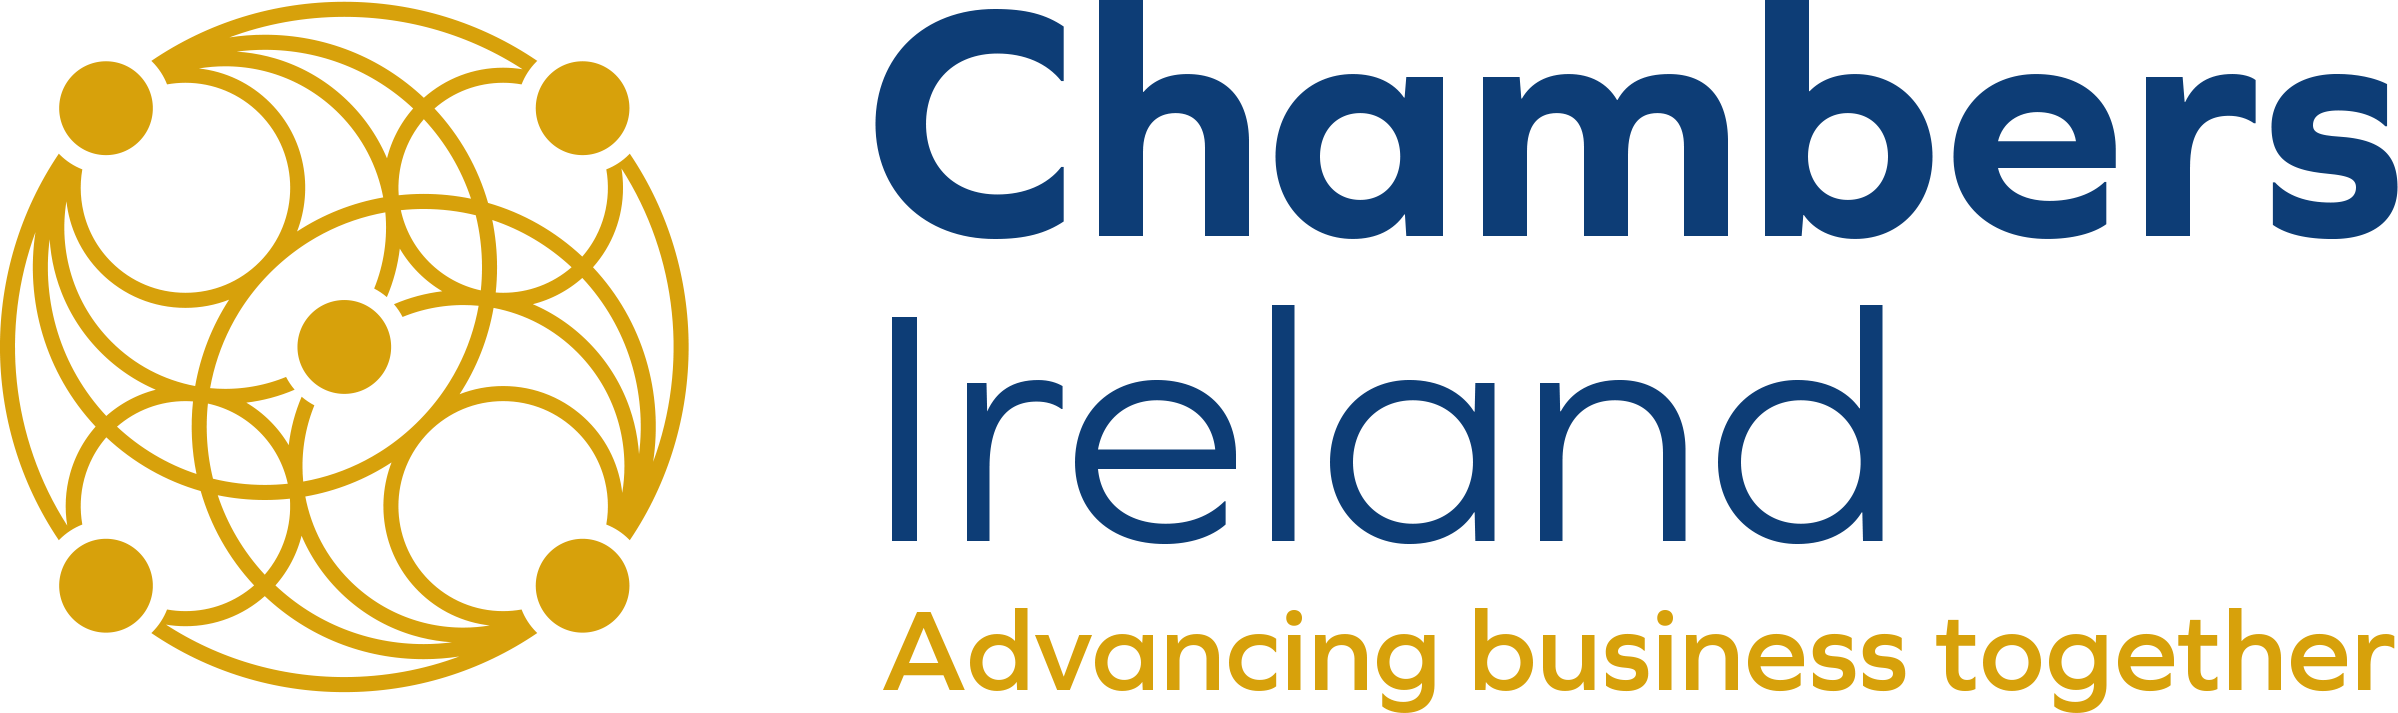 The Chambers of Commerce of Ireland CLG